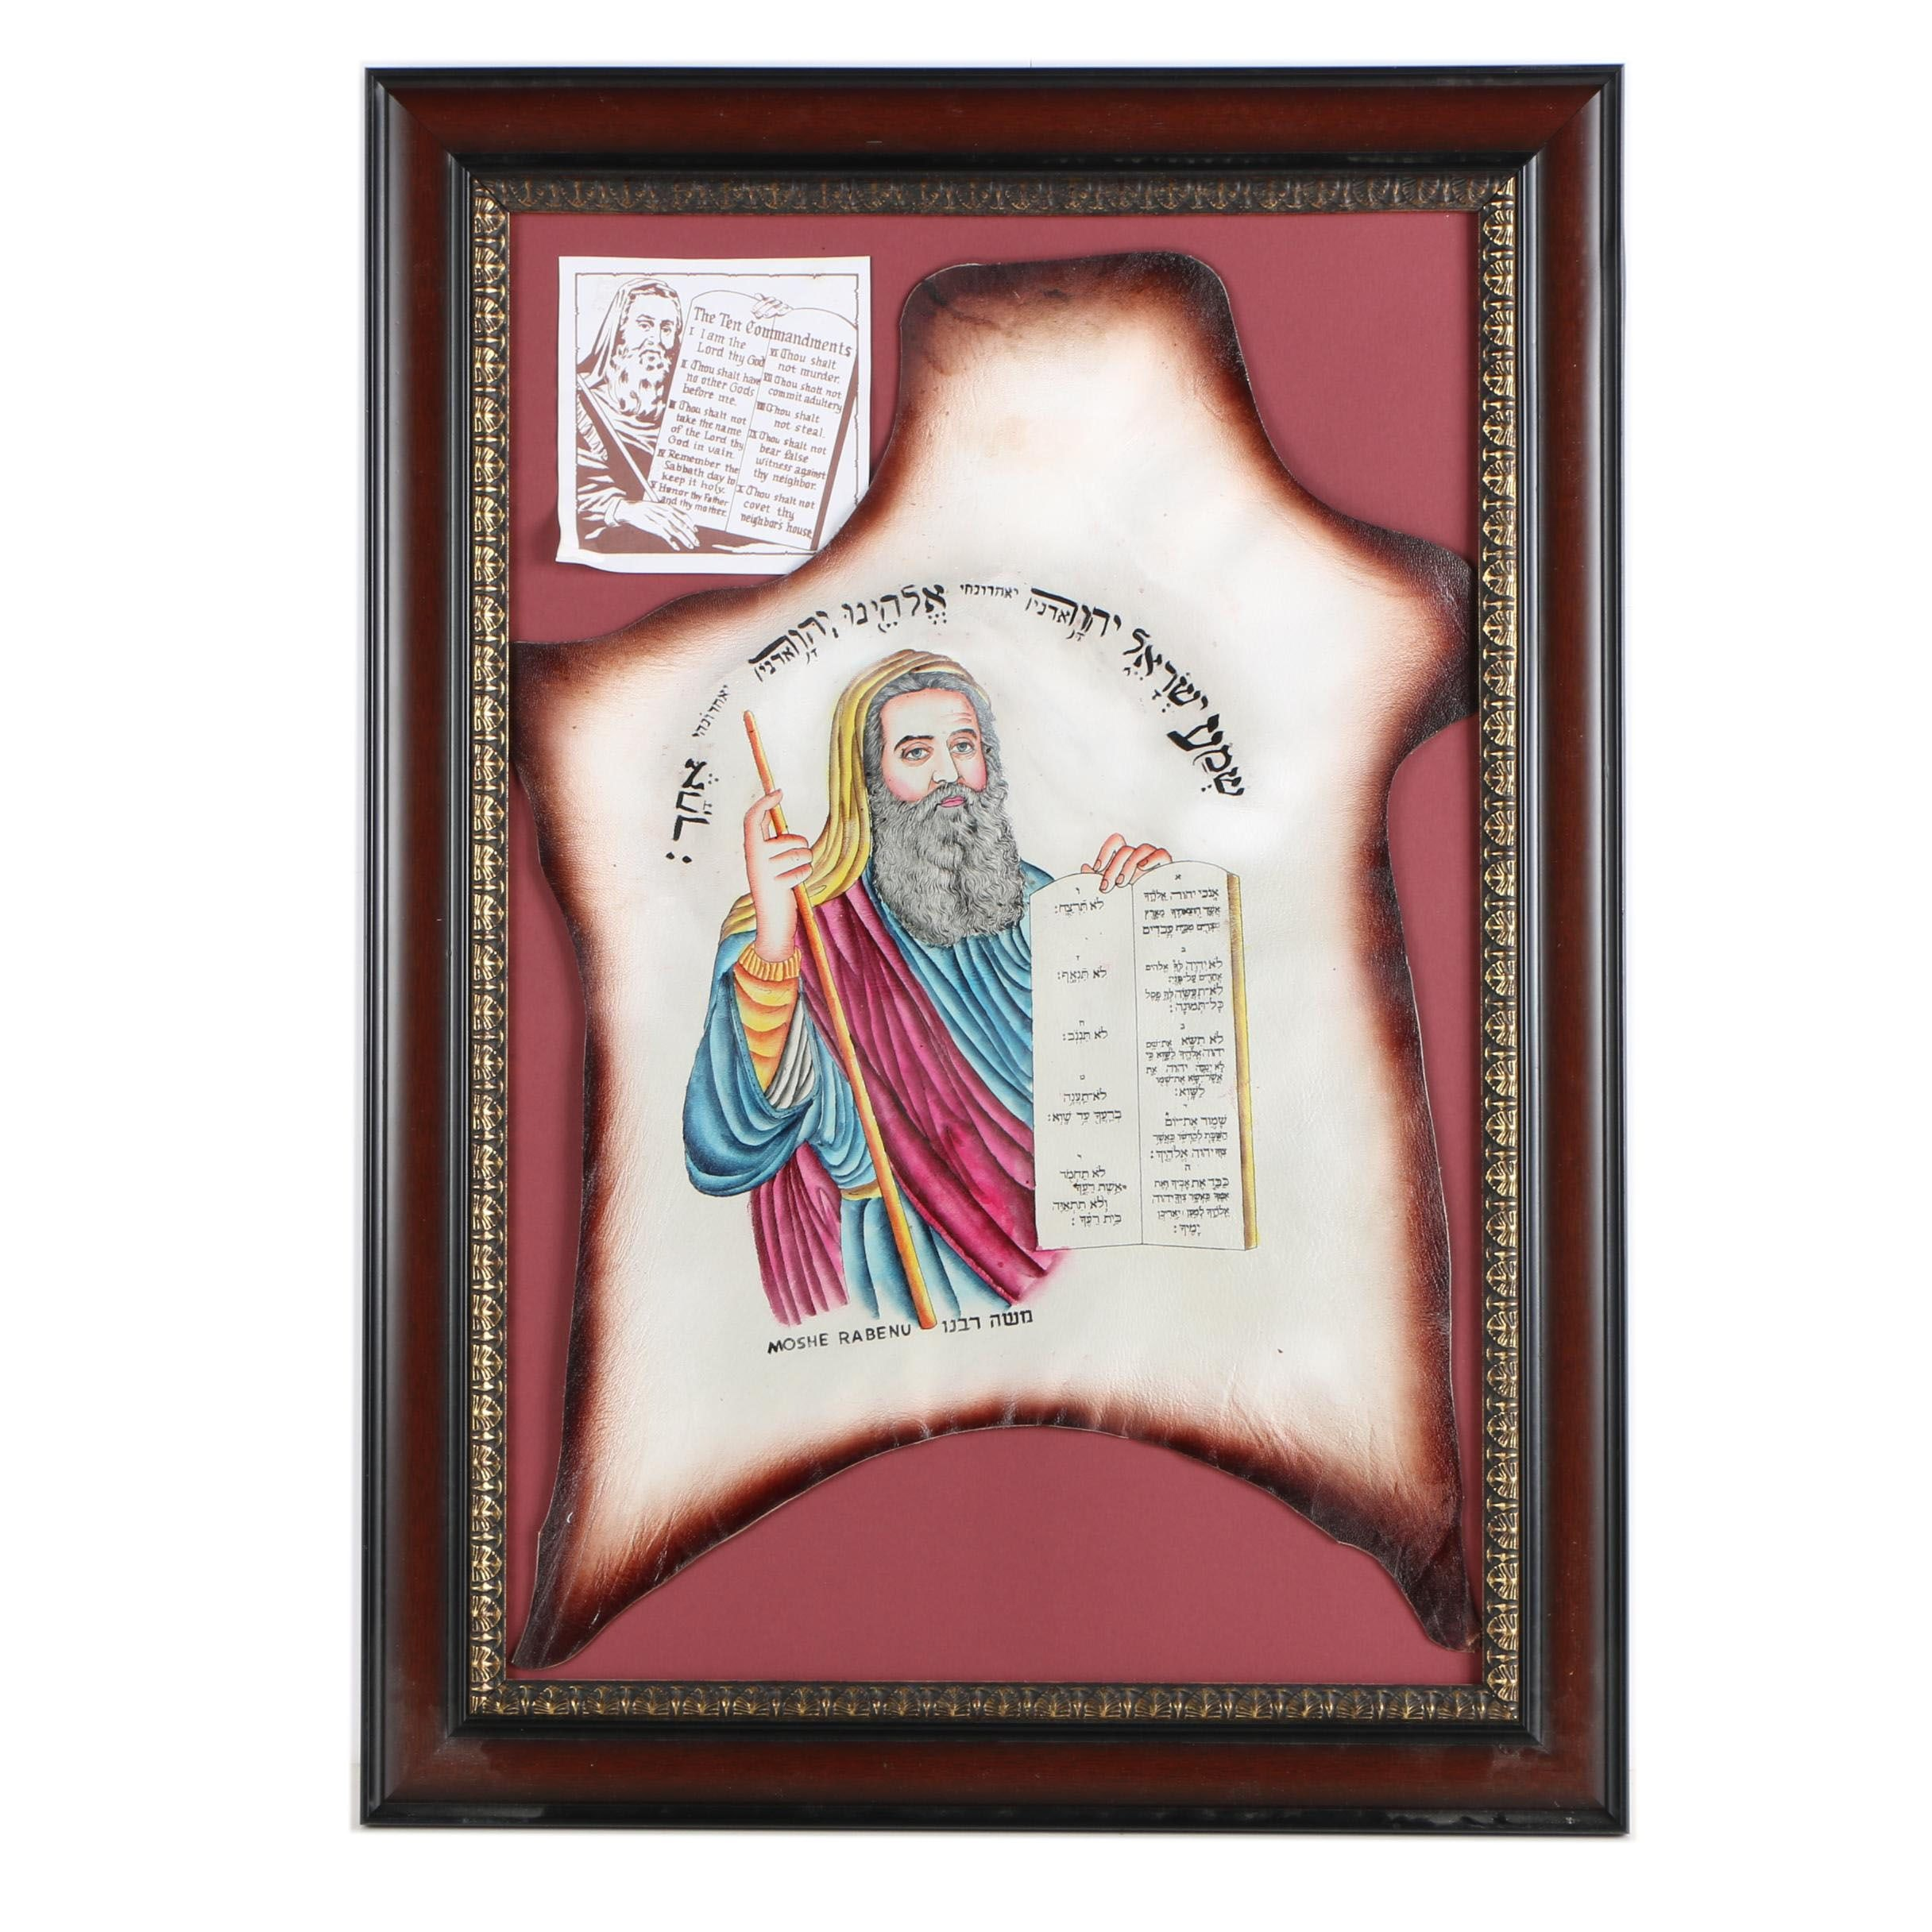 Watercolor Painting on Leather of Moses with the Ten Commandments